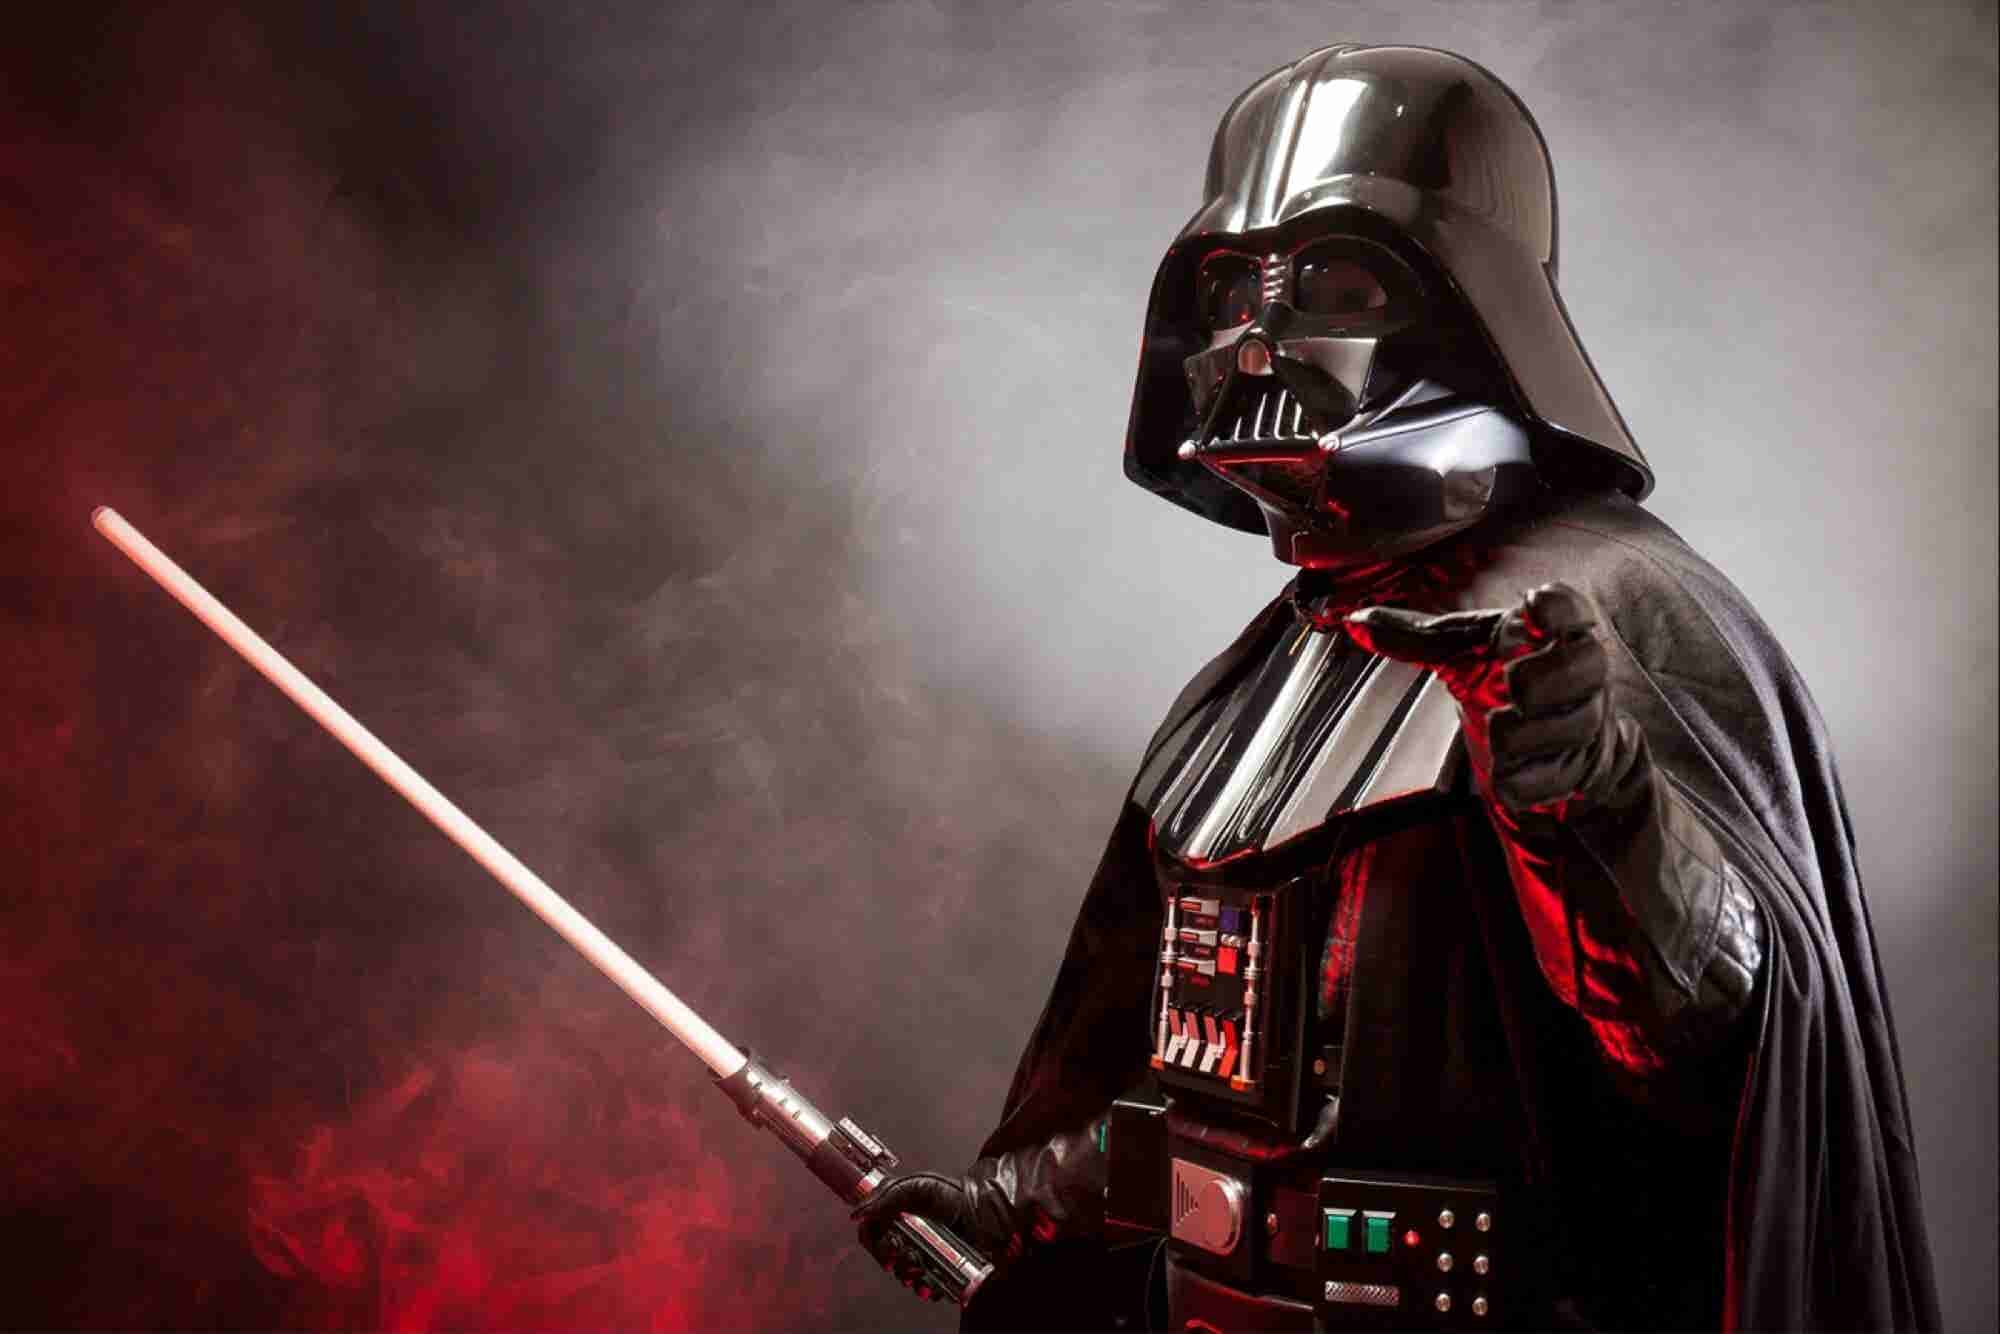 5 Product Launch Lessons From 'Star Wars Episode VII'